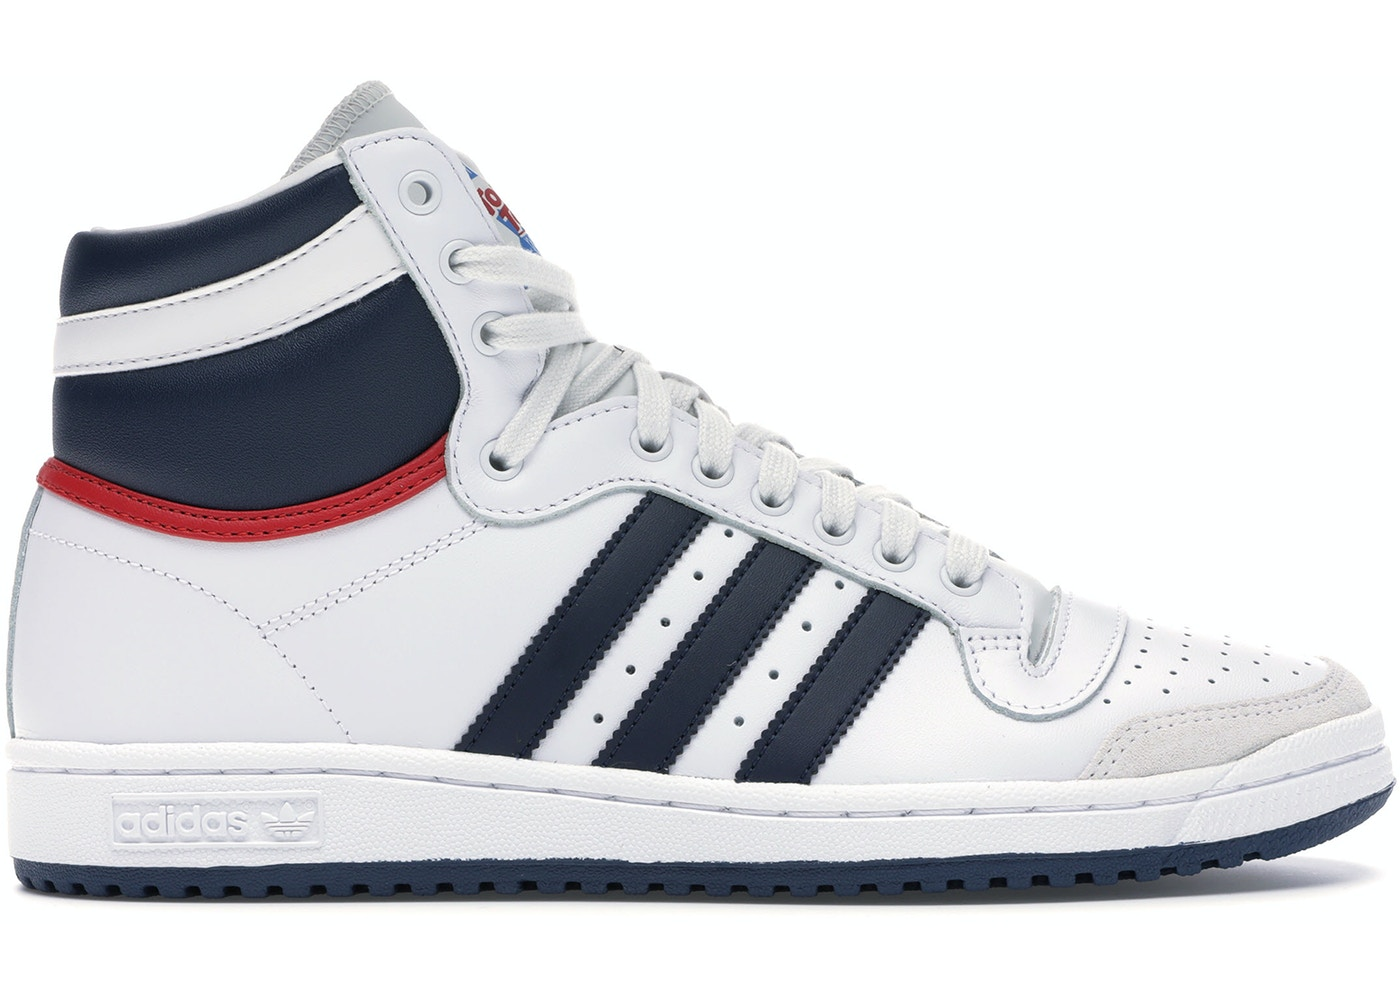 outlet store 0fae1 37dc3 adidas Top Ten Hi 40th Anniversary (2019)